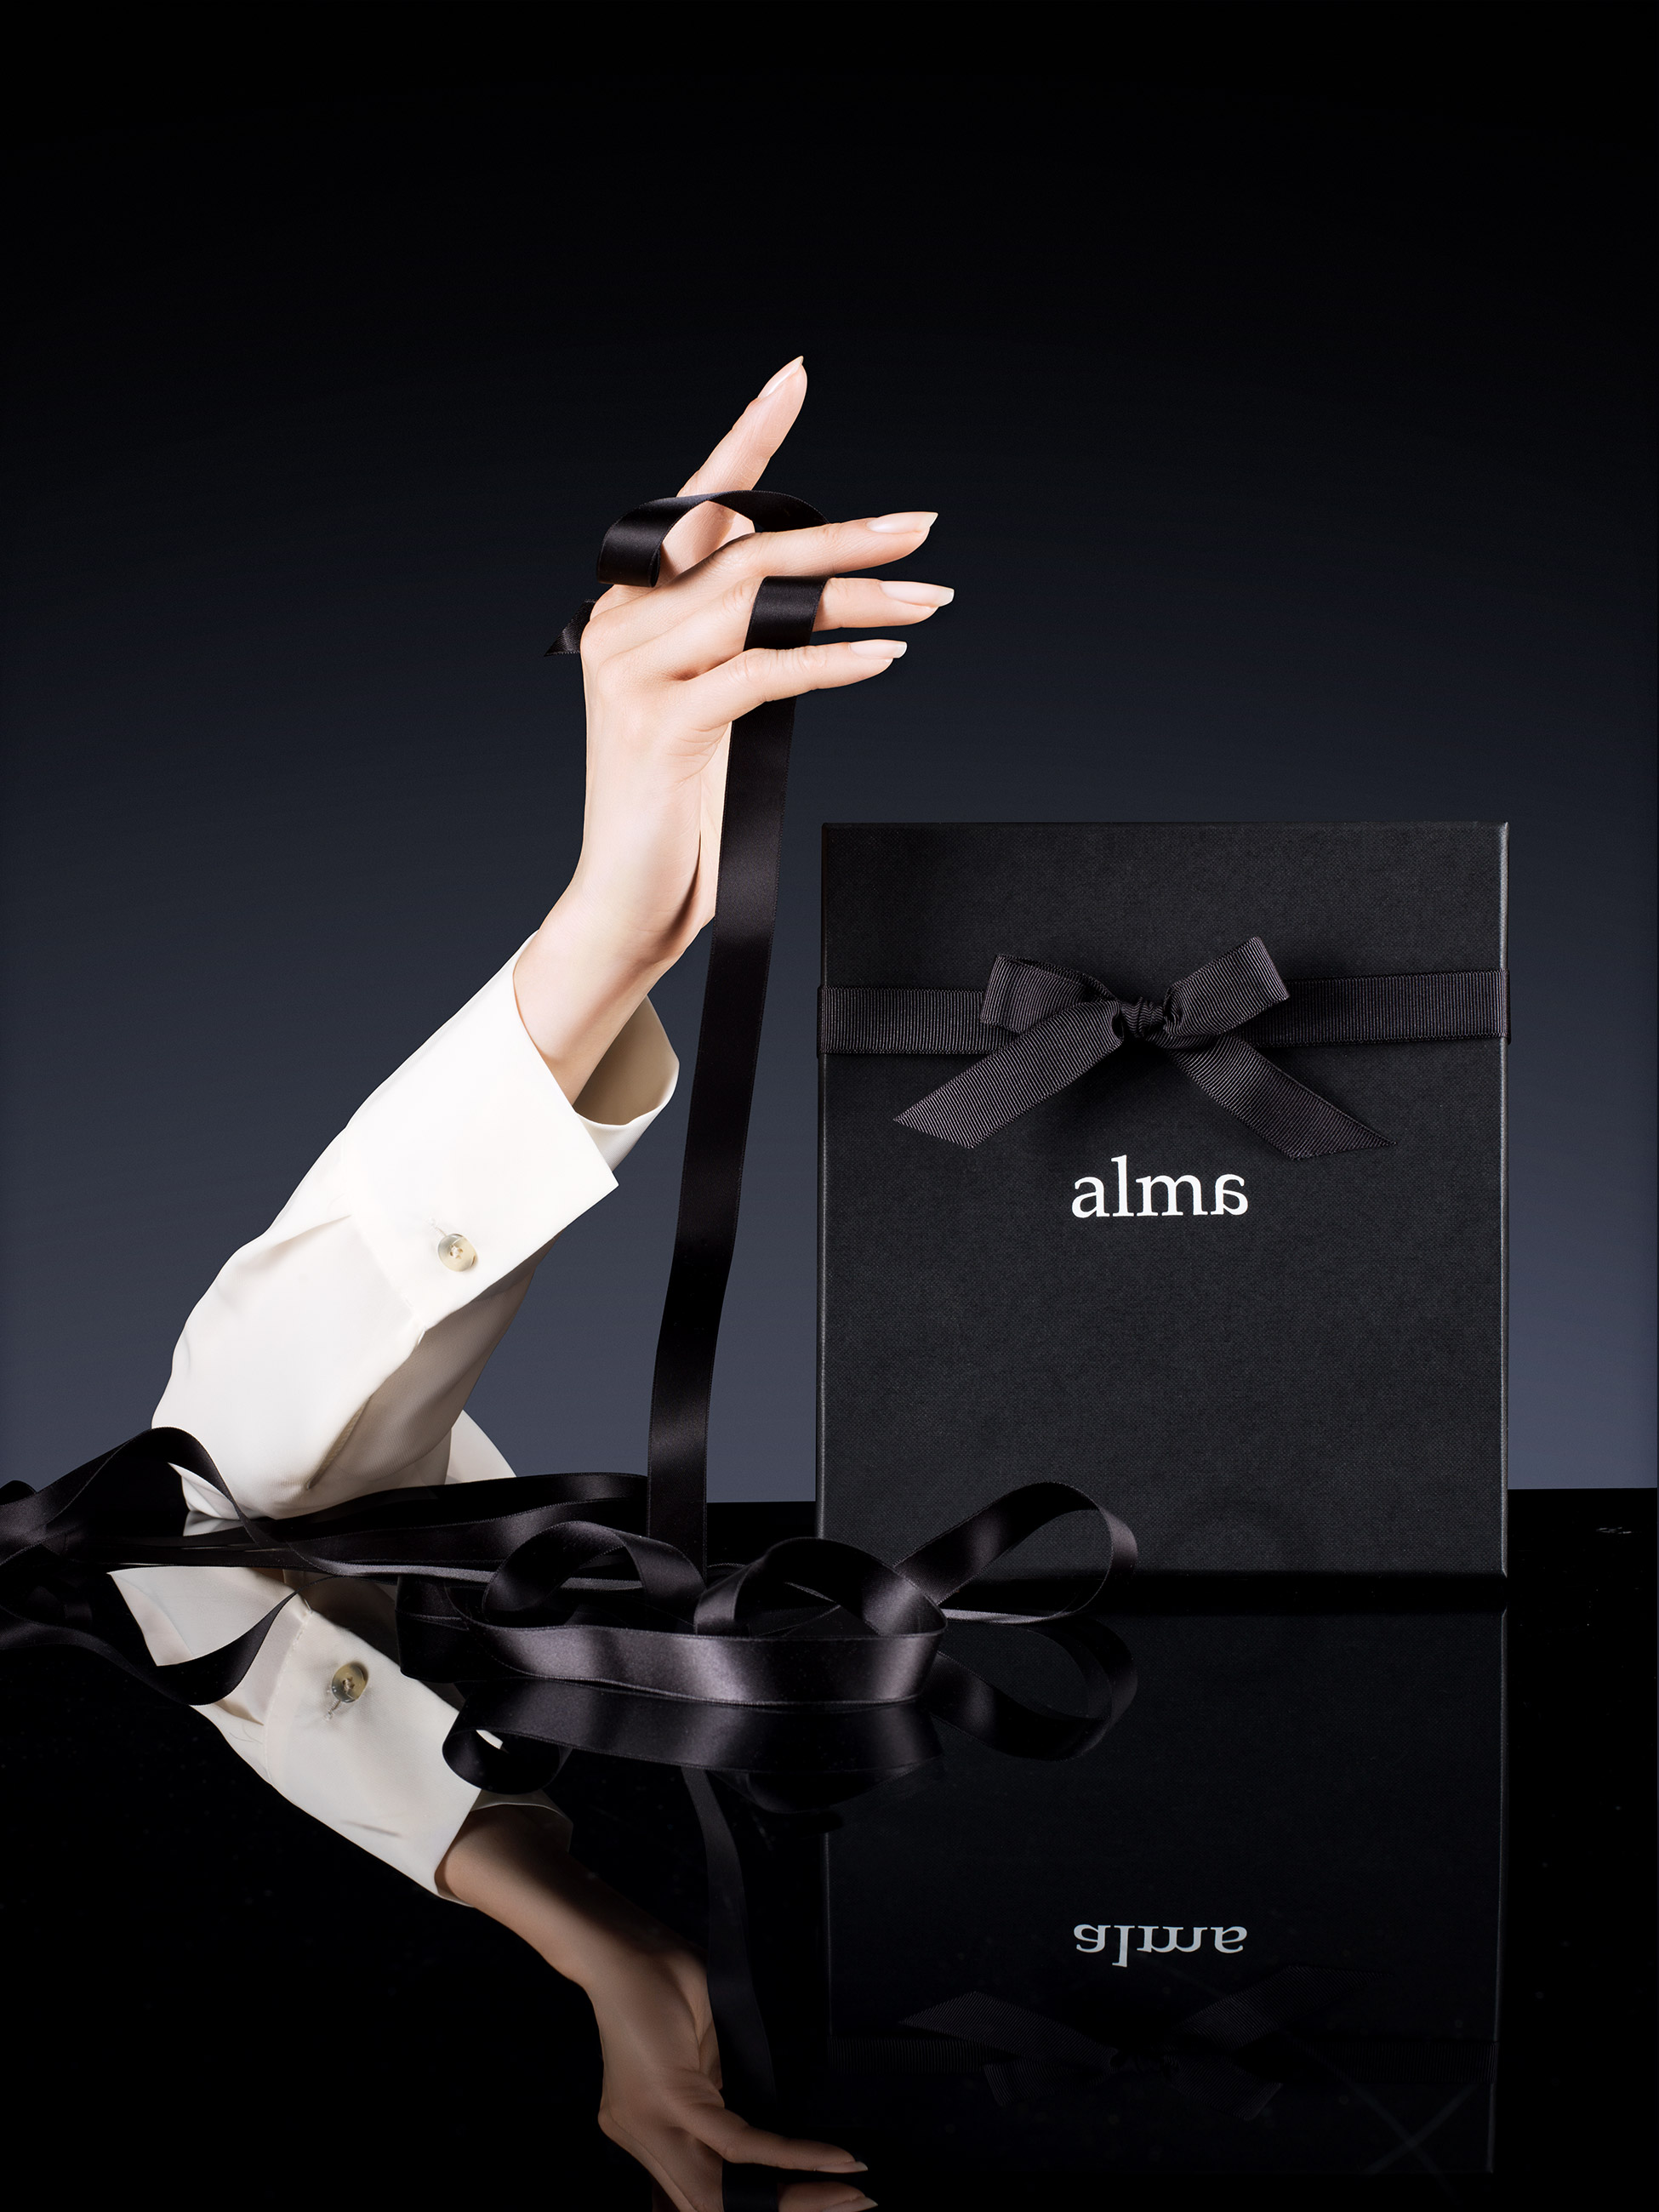 alma-packaging